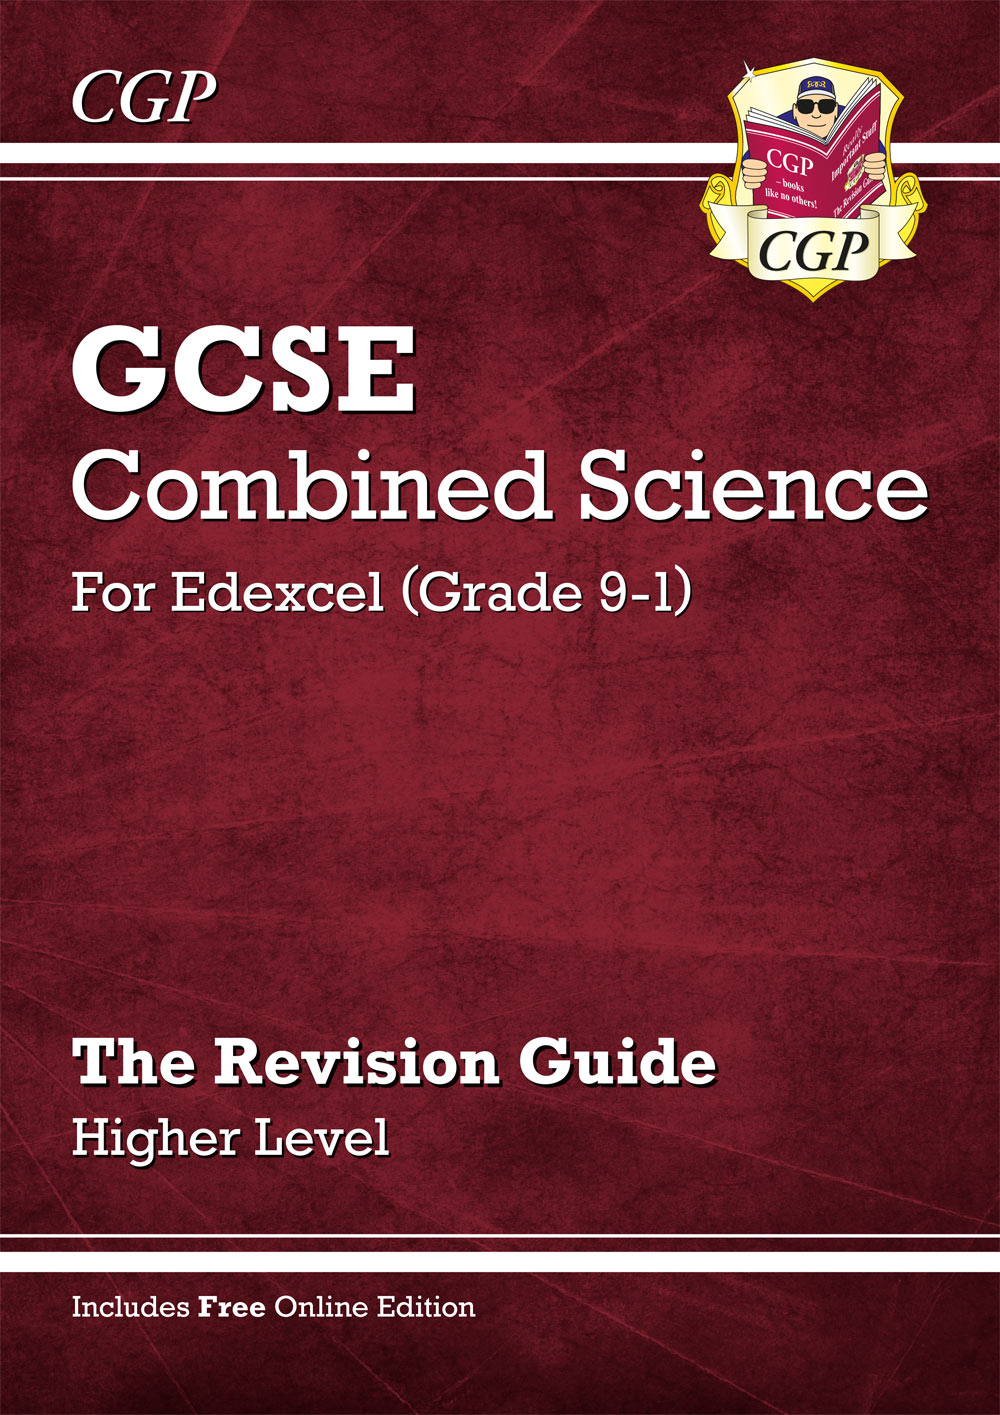 SEHR45 - Grade 9-1 GCSE Combined Science: Edexcel Revision Guide with Online Edition - Higher